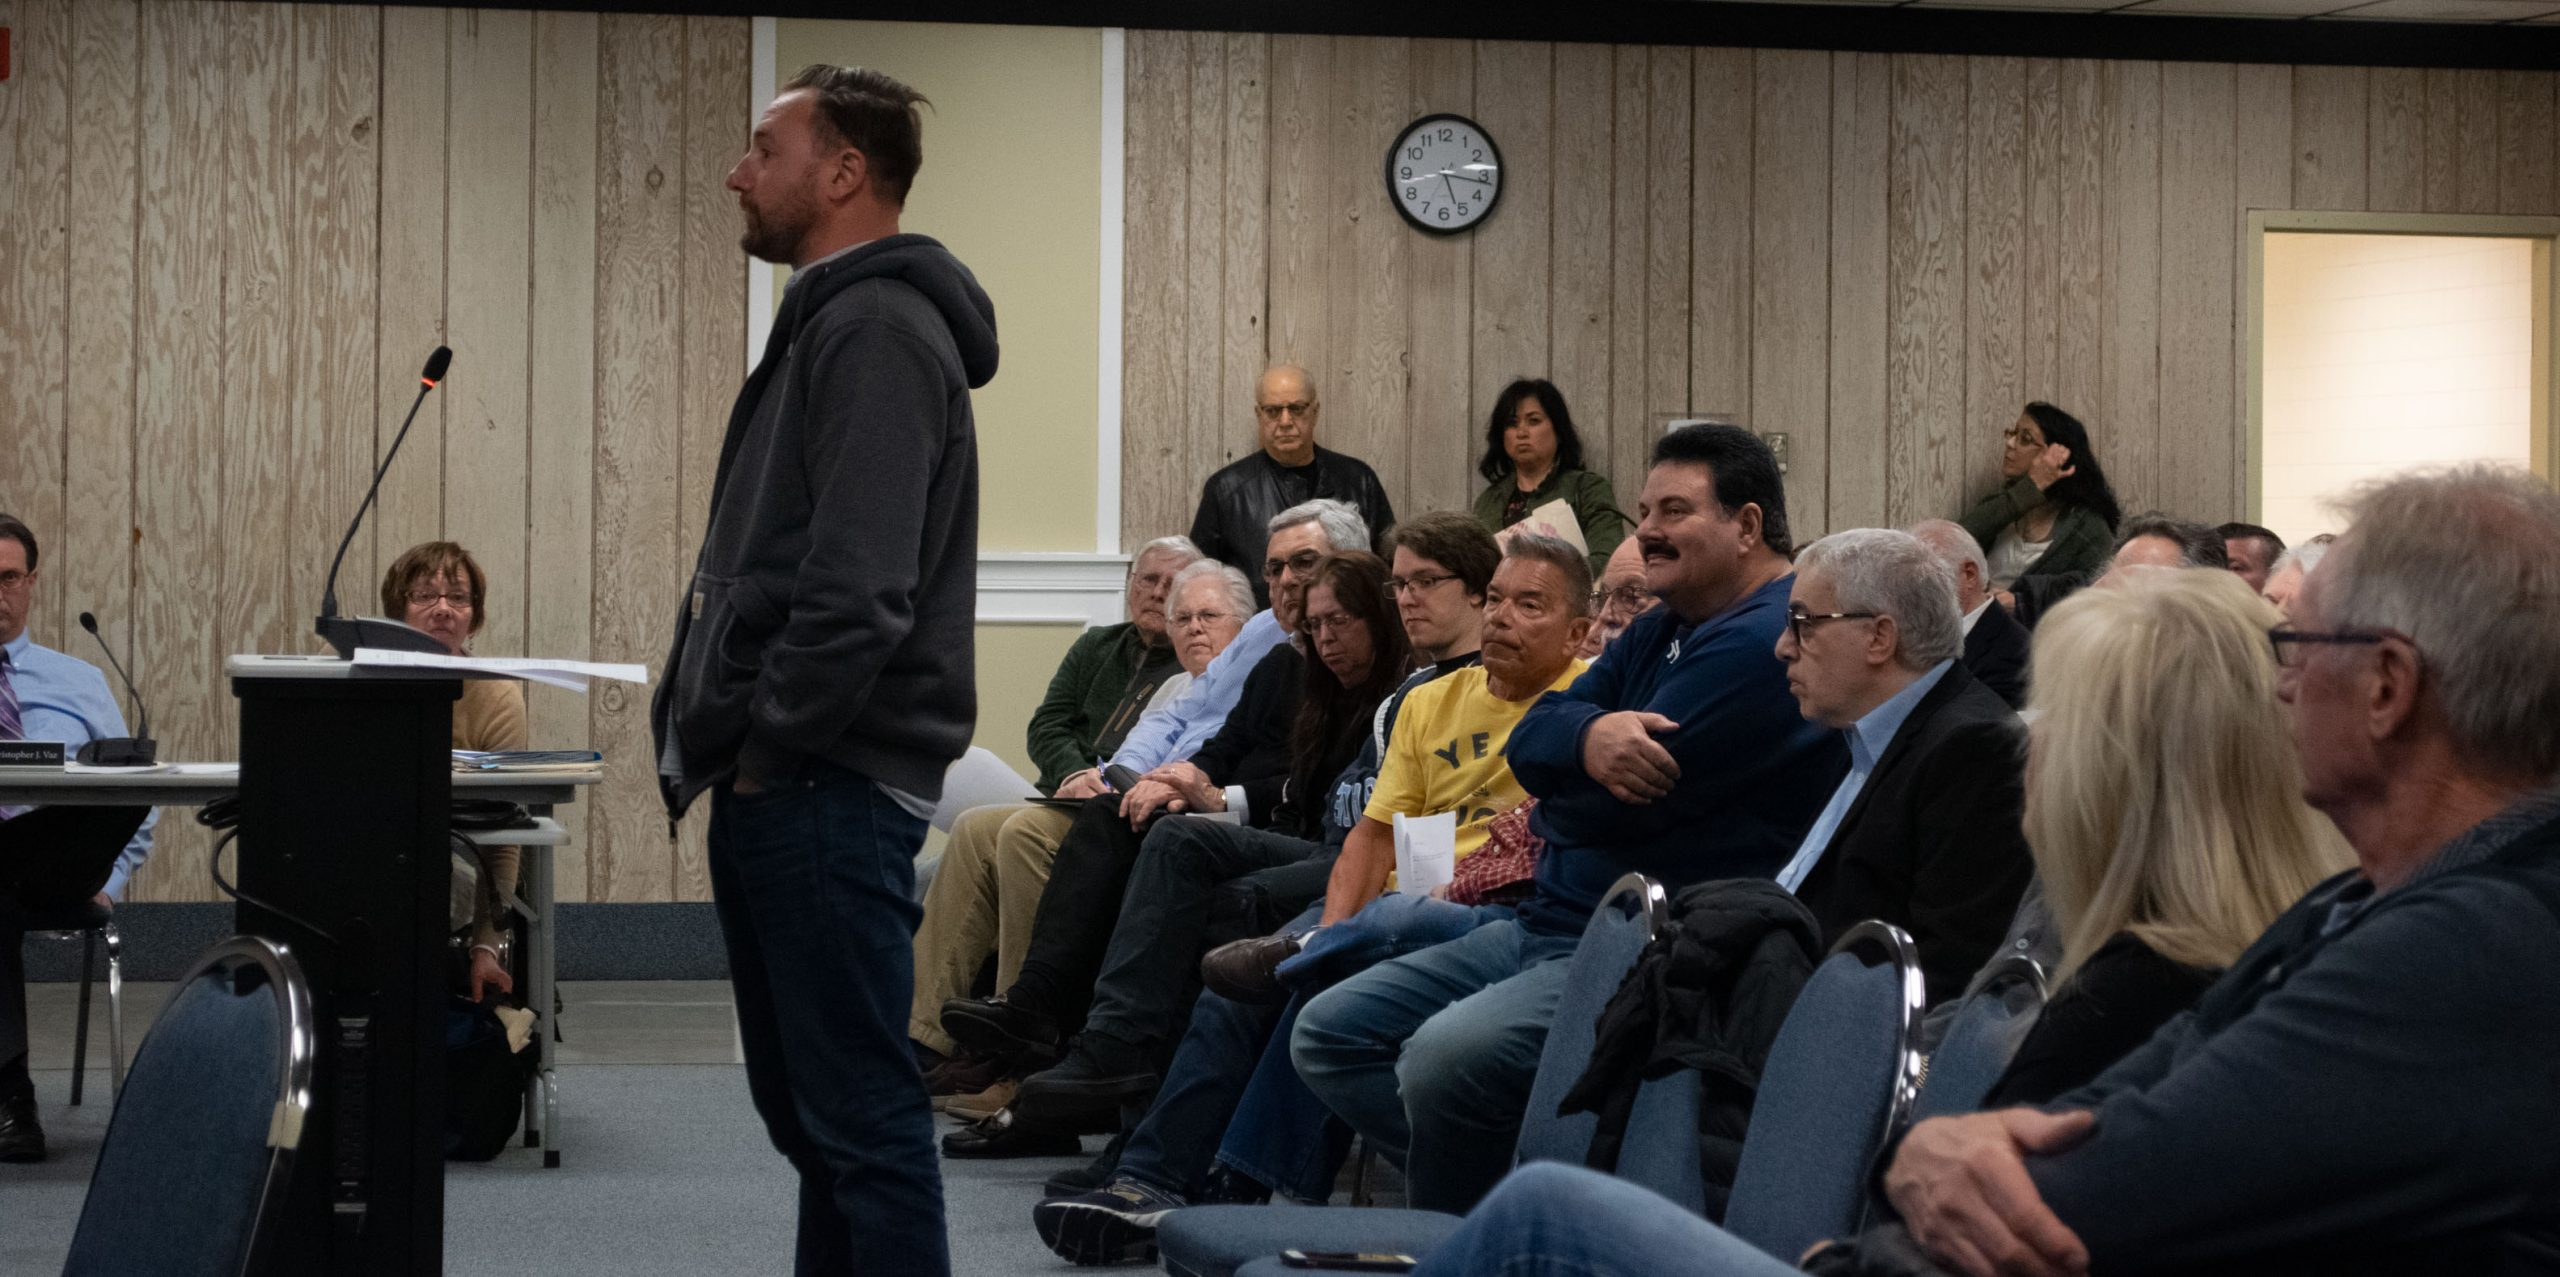 Discussion of a zonign ordinance at the March 4, 2019 Seaside Heights council meeting. (Photo: Daniel Nee)